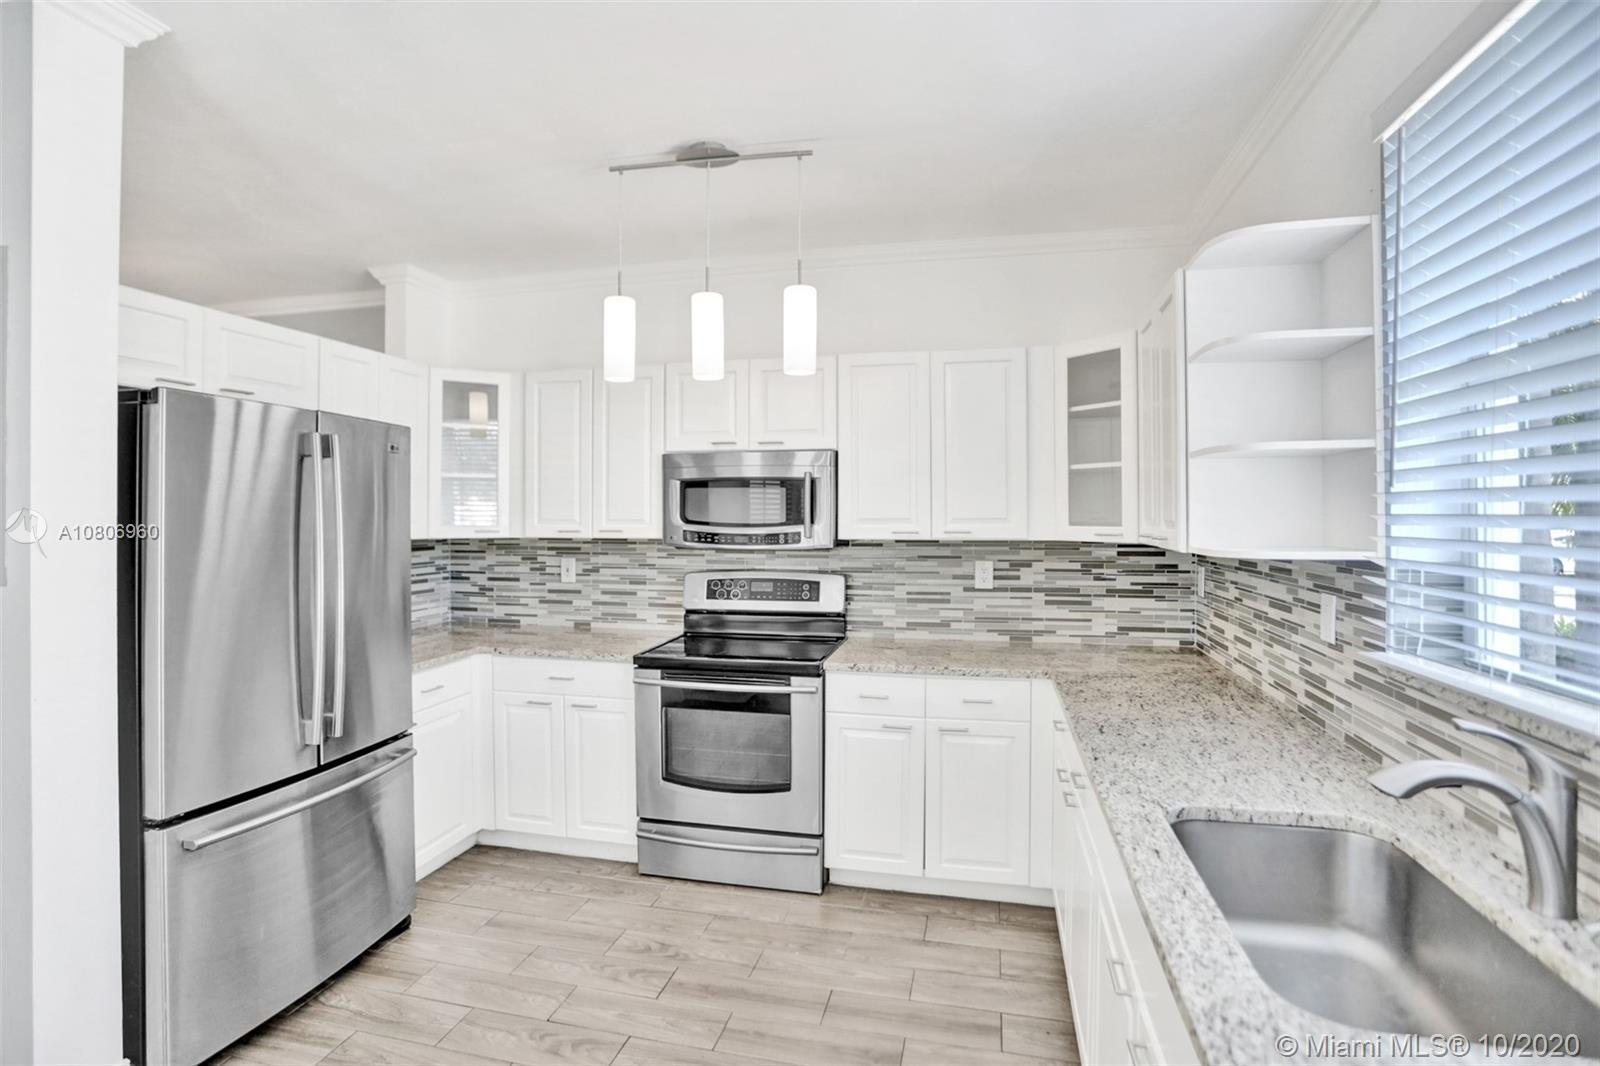 BRAND NEW ROOF, PRICED TO SELL NOW! Great townhouse in West Lake Village, Nicely updated, Brand new